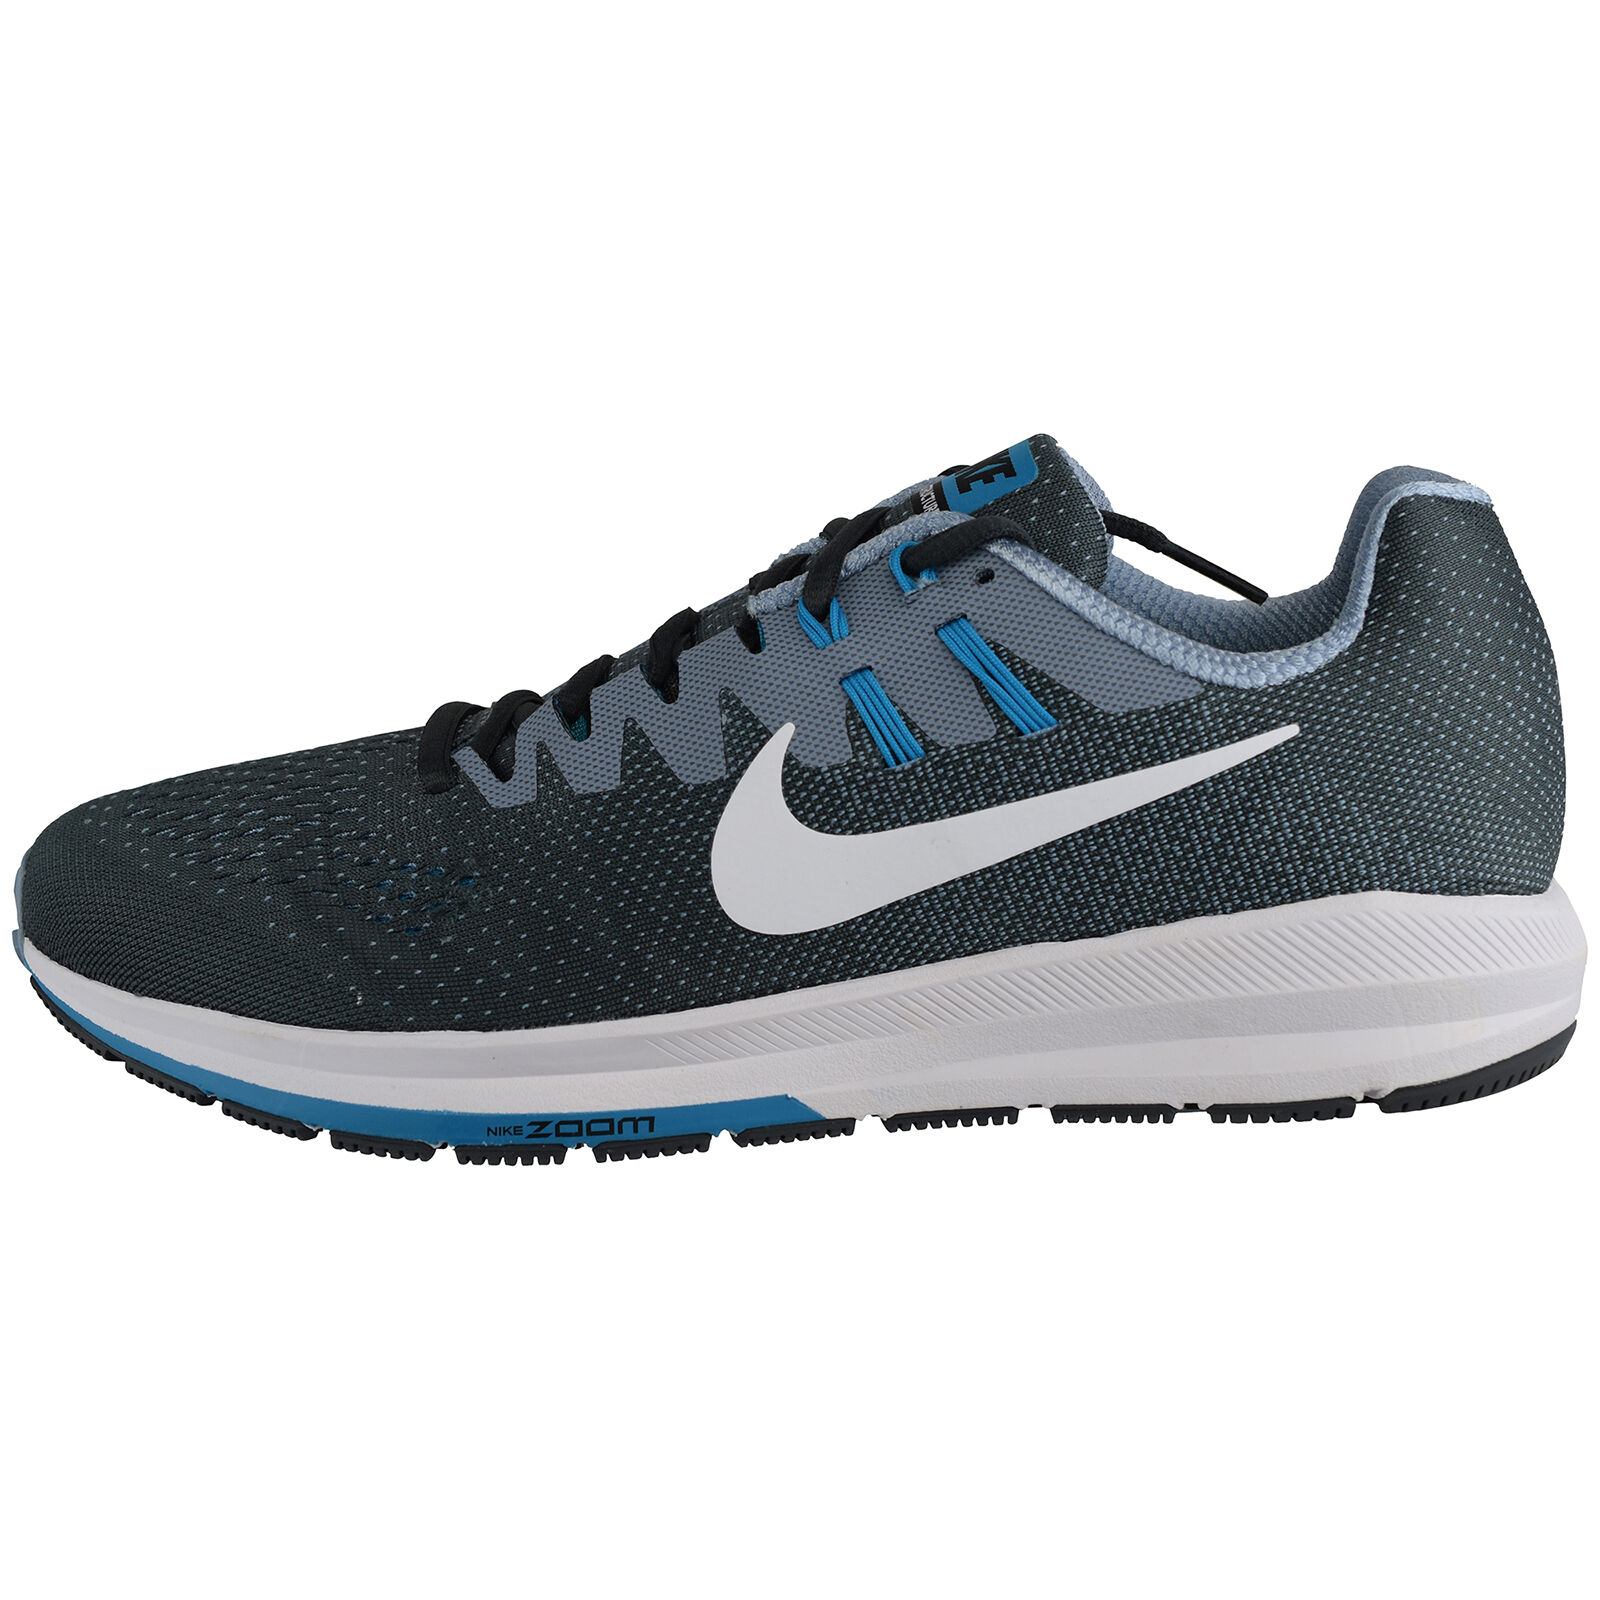 Nike air zoom struktur 20 849576-001 jogging - schuhe locker.